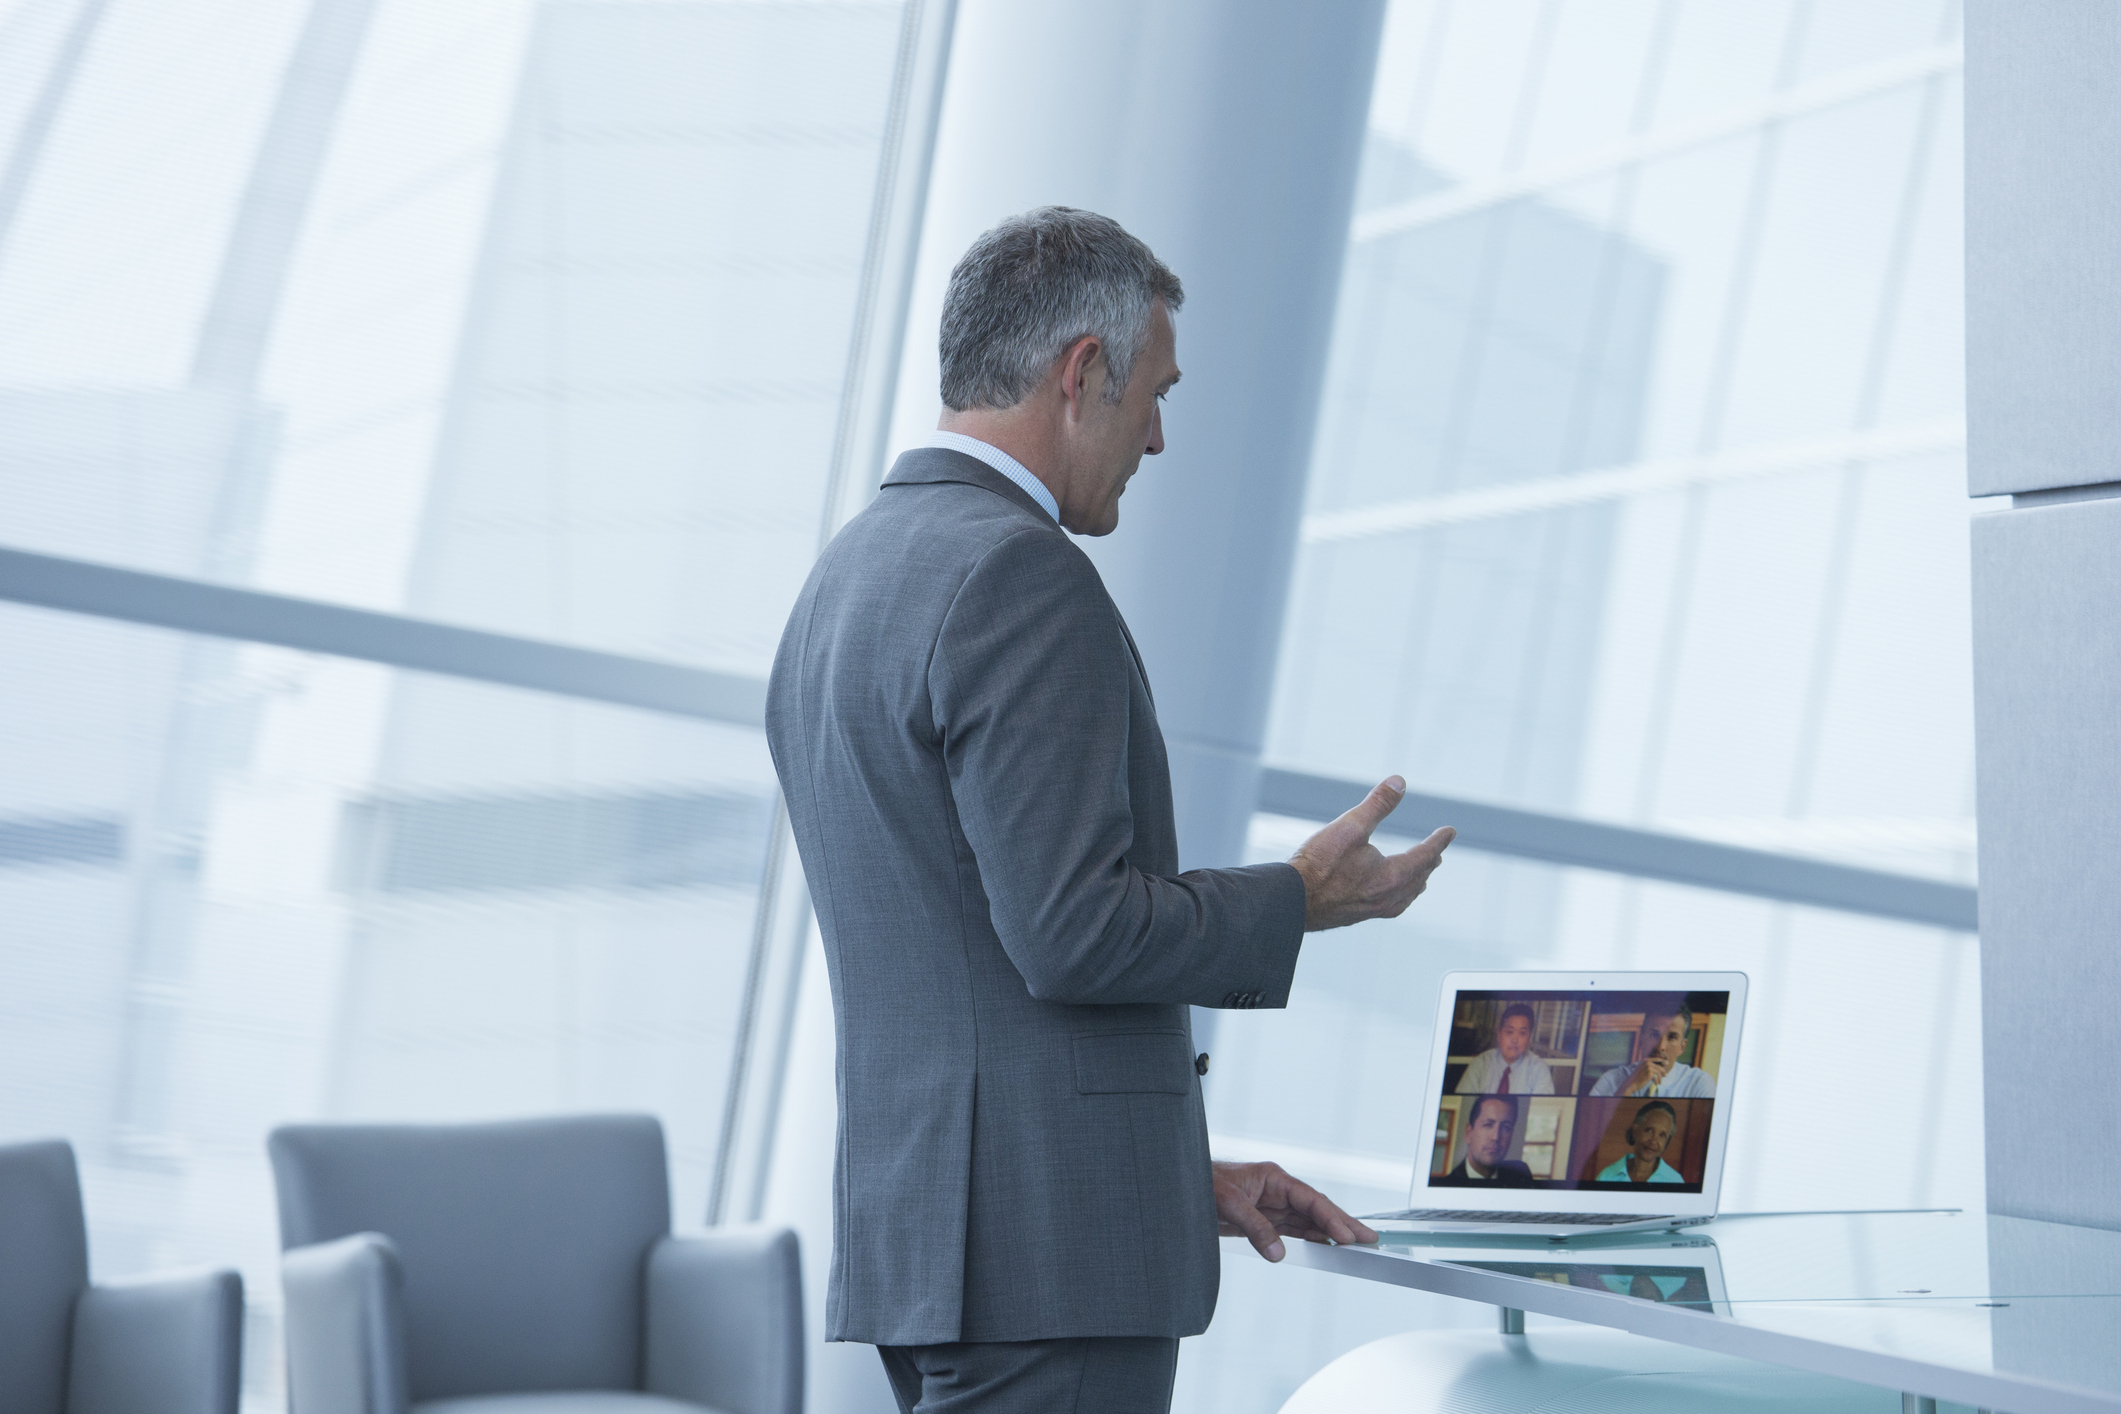 A CIO is standing in his office, talking on a video conference on his laptop